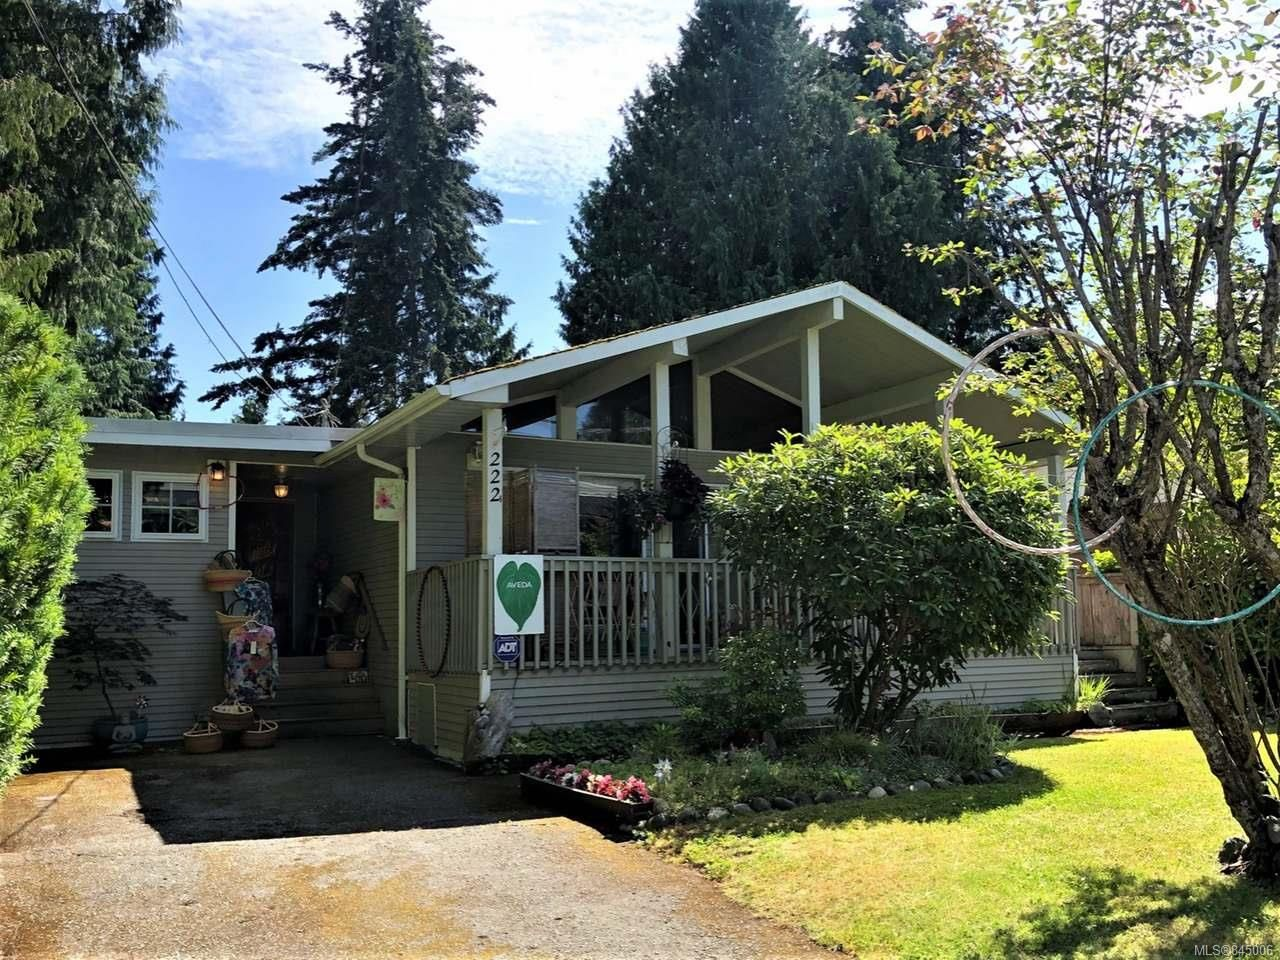 Main Photo: 222 W Fern Rd in QUALICUM BEACH: PQ Qualicum Beach House for sale (Parksville/Qualicum)  : MLS®# 845006